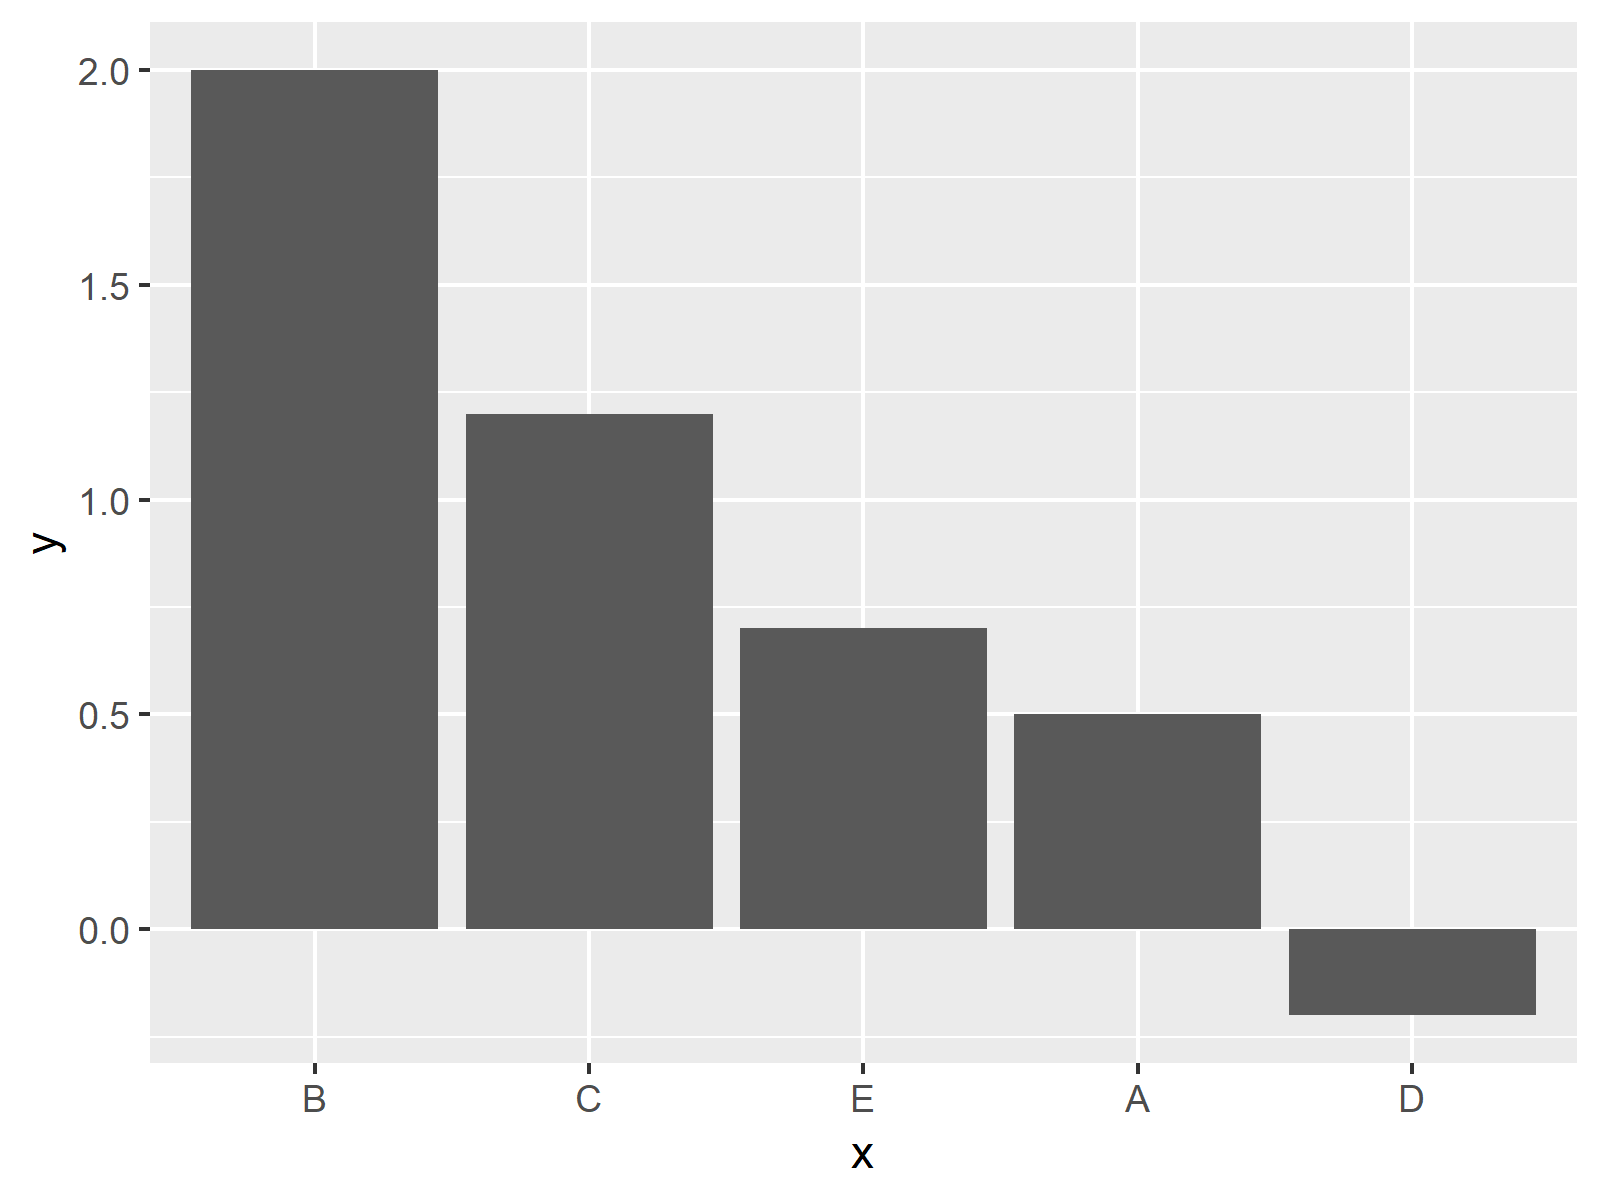 Order Bars Of Ggplot2 Barchart In R 4 Examples How To Sort